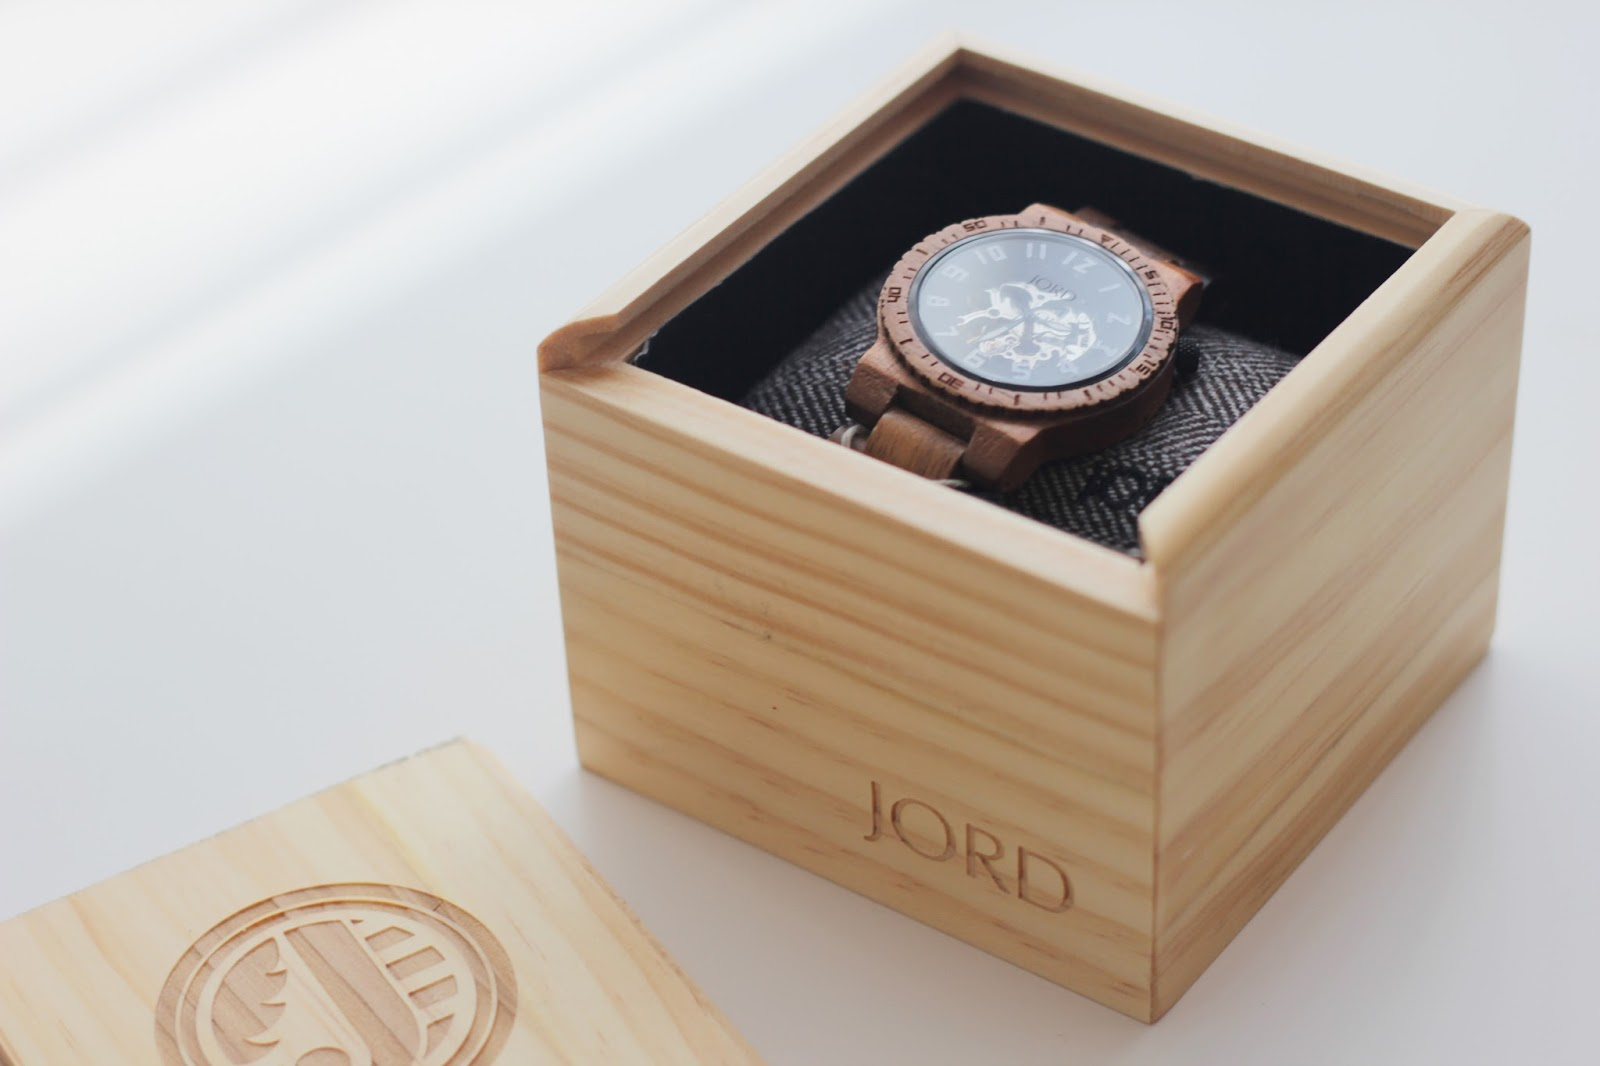 jord wood watches abigail kemples as soon as you open the box your breath is taken away by the gorgeous packaging then you open the wooden box to see a stunning watch